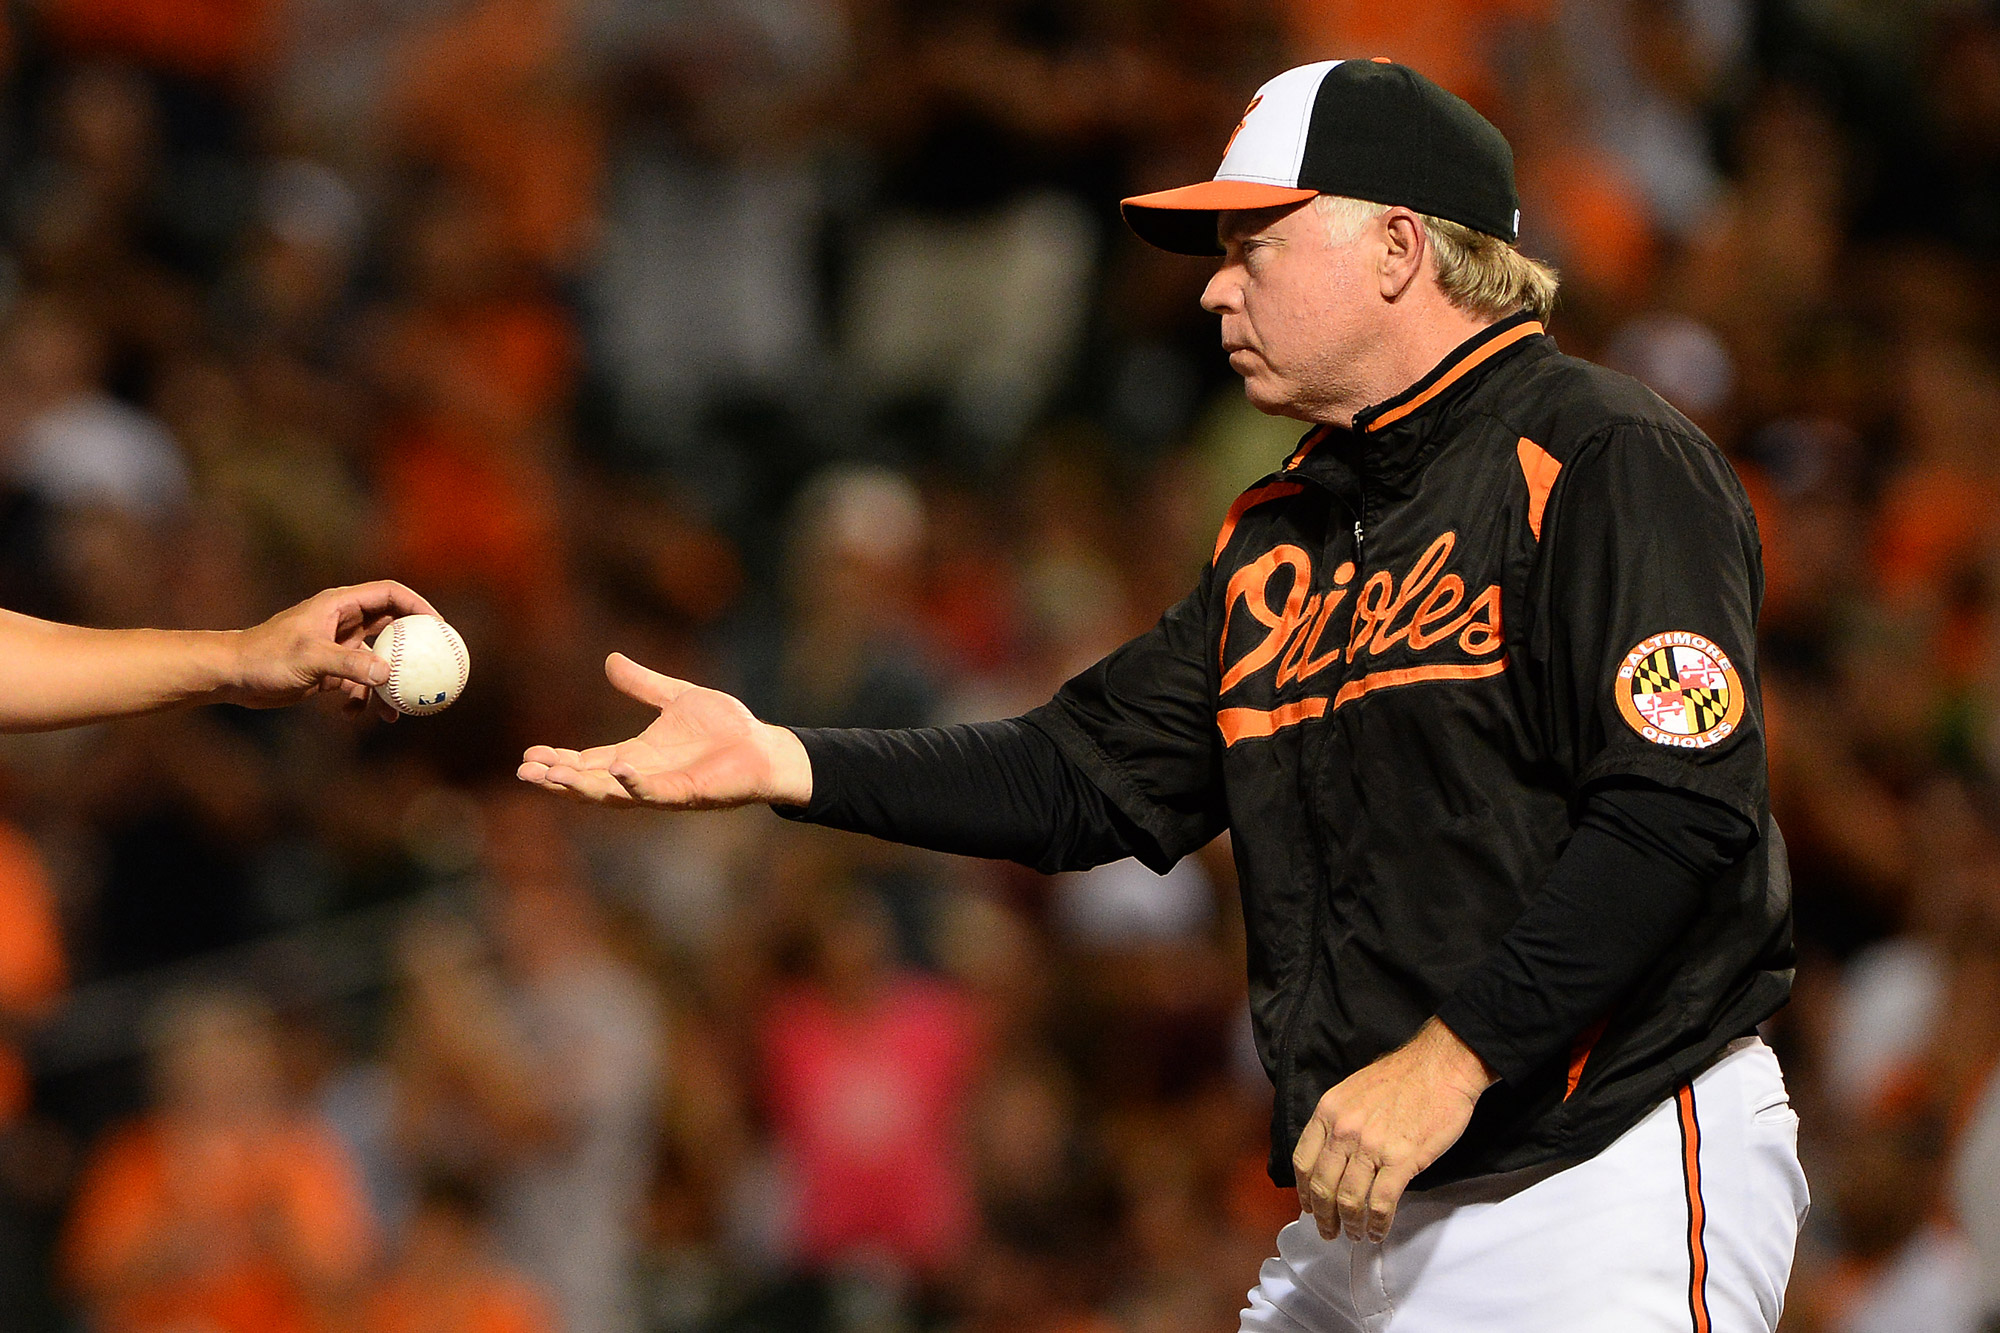 Baltimore Orioles manager Buck Showalter takes the ball from pitcher Wei-Yin Chen after pulling him out of the game in 6th inning on July 30, 2013 at Oriole Park at Camden Yards in Baltimore, Md.